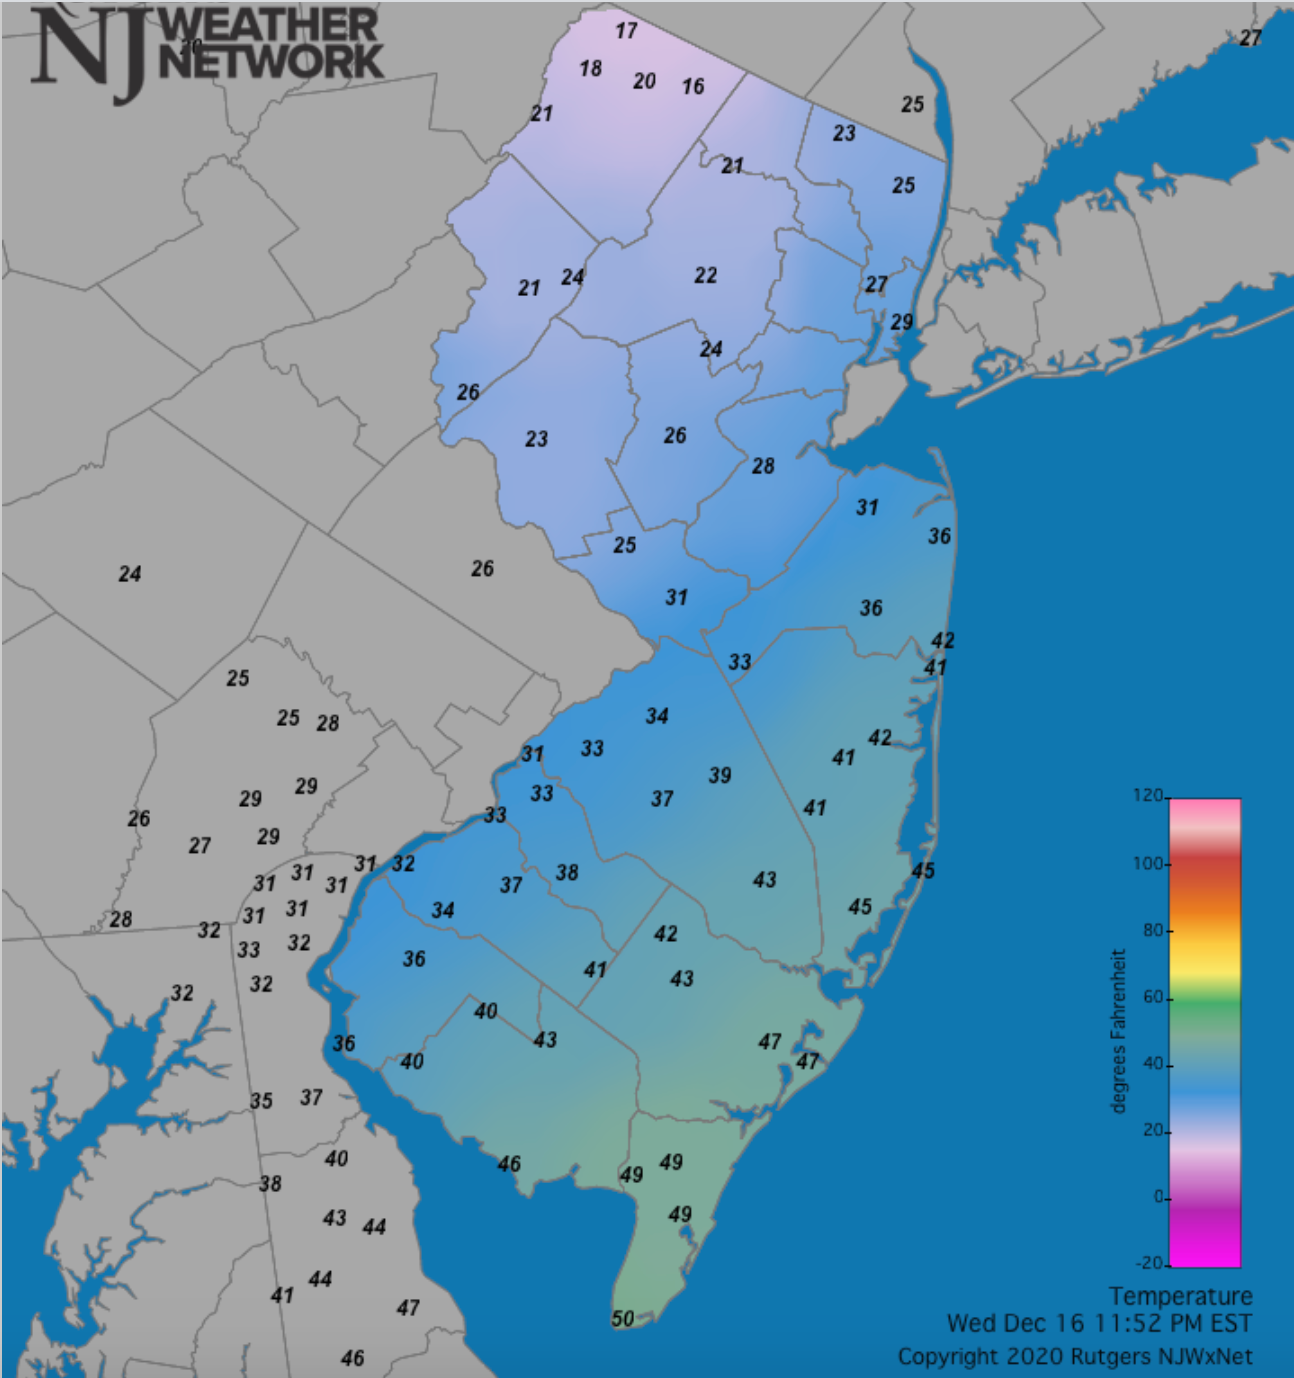 NJ temperature map at 11:52 PM on December 16th